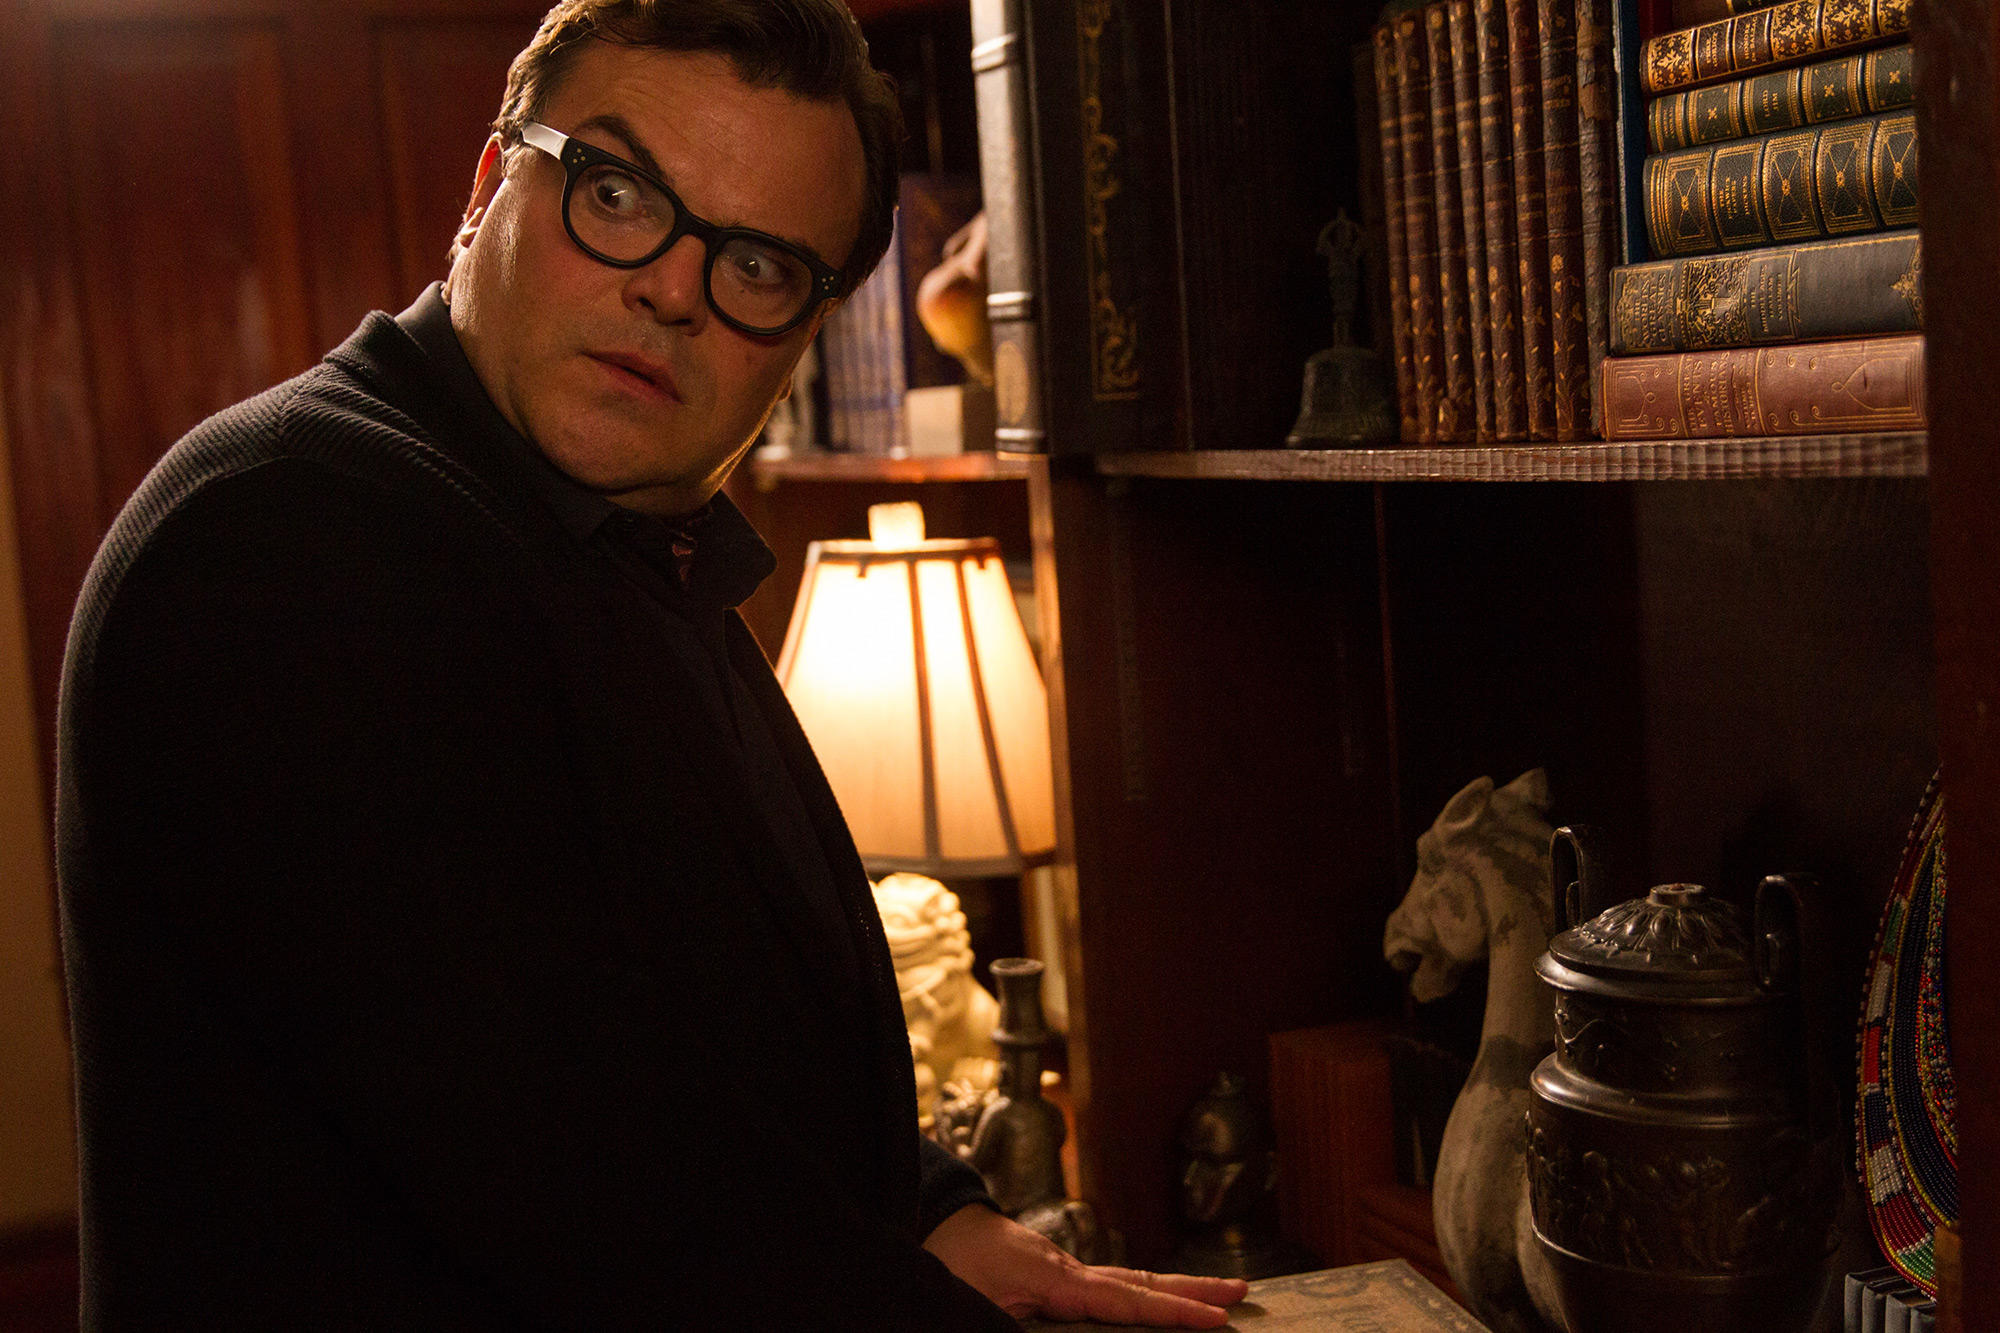 Check out the movie photos of 'Goosebumps'